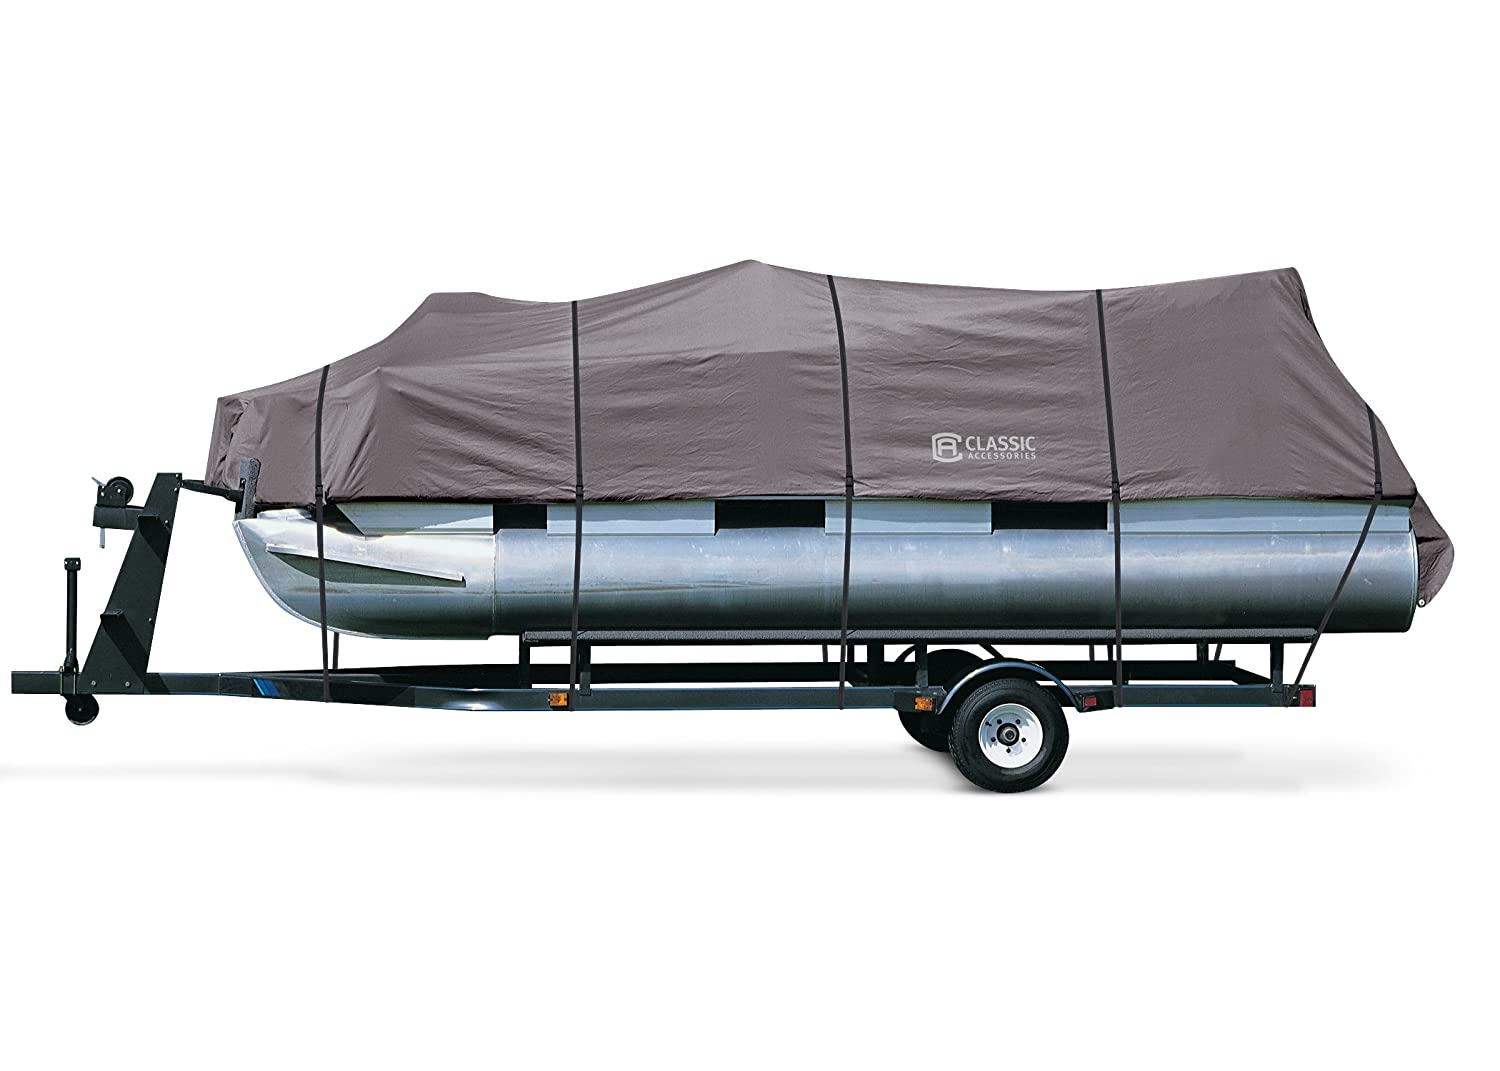 Classic Accessories Stormpro Pontoon Boat Cover, Fits 21 Feet-24 Feet 20-028-090801-00